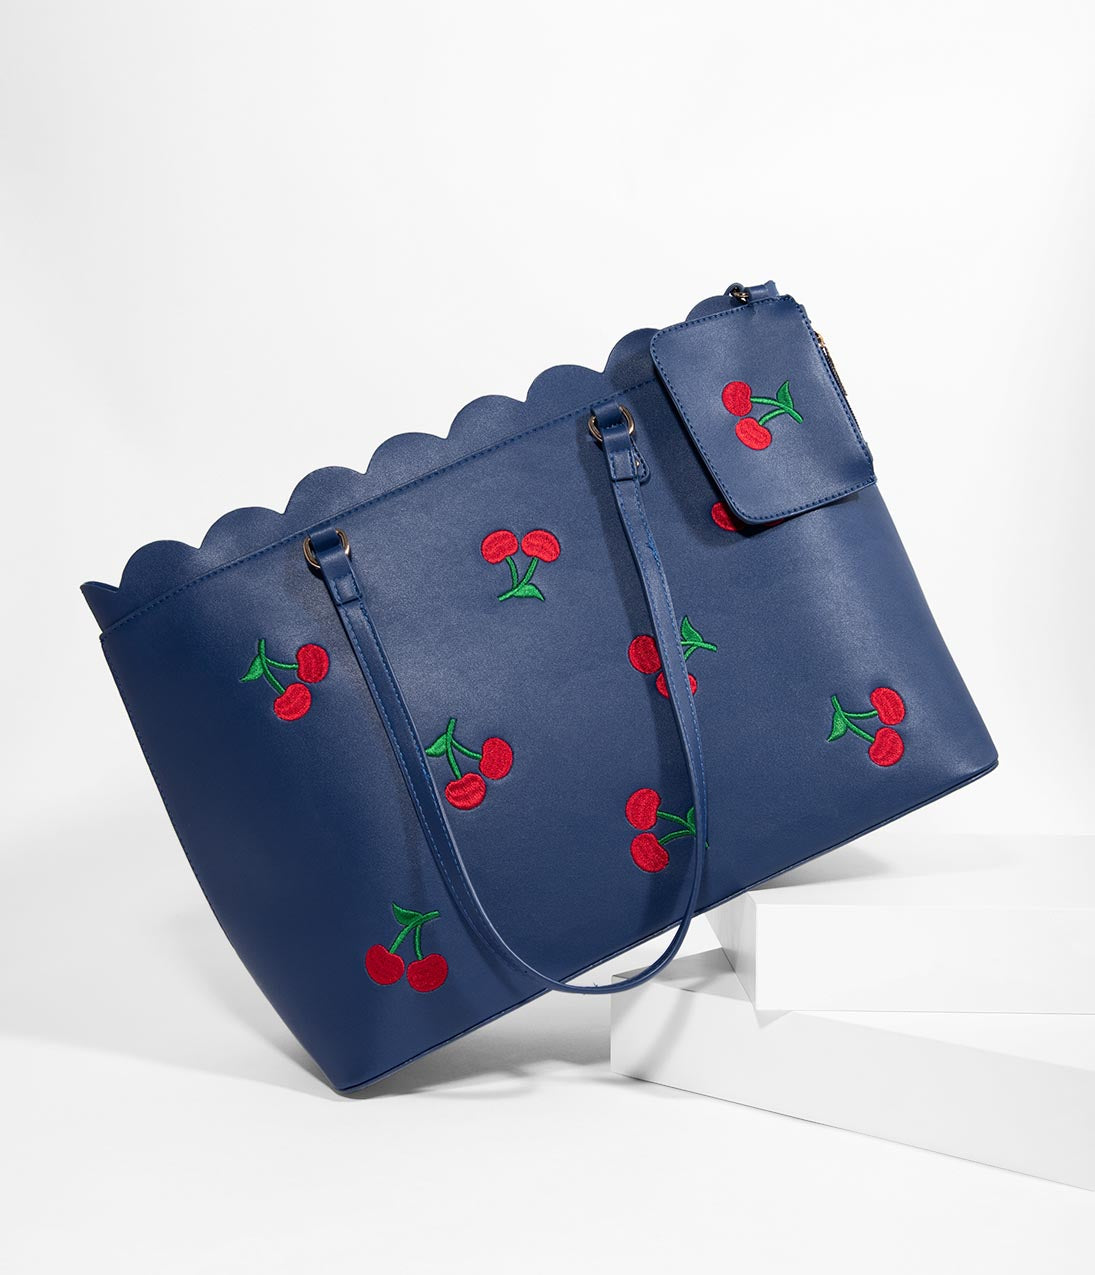 1950s Handbags, Purses, and Evening Bag Styles Voodoo Vixen Blue Leatherette  Red Cherry Carla Scalloped Tote $38.00 AT vintagedancer.com